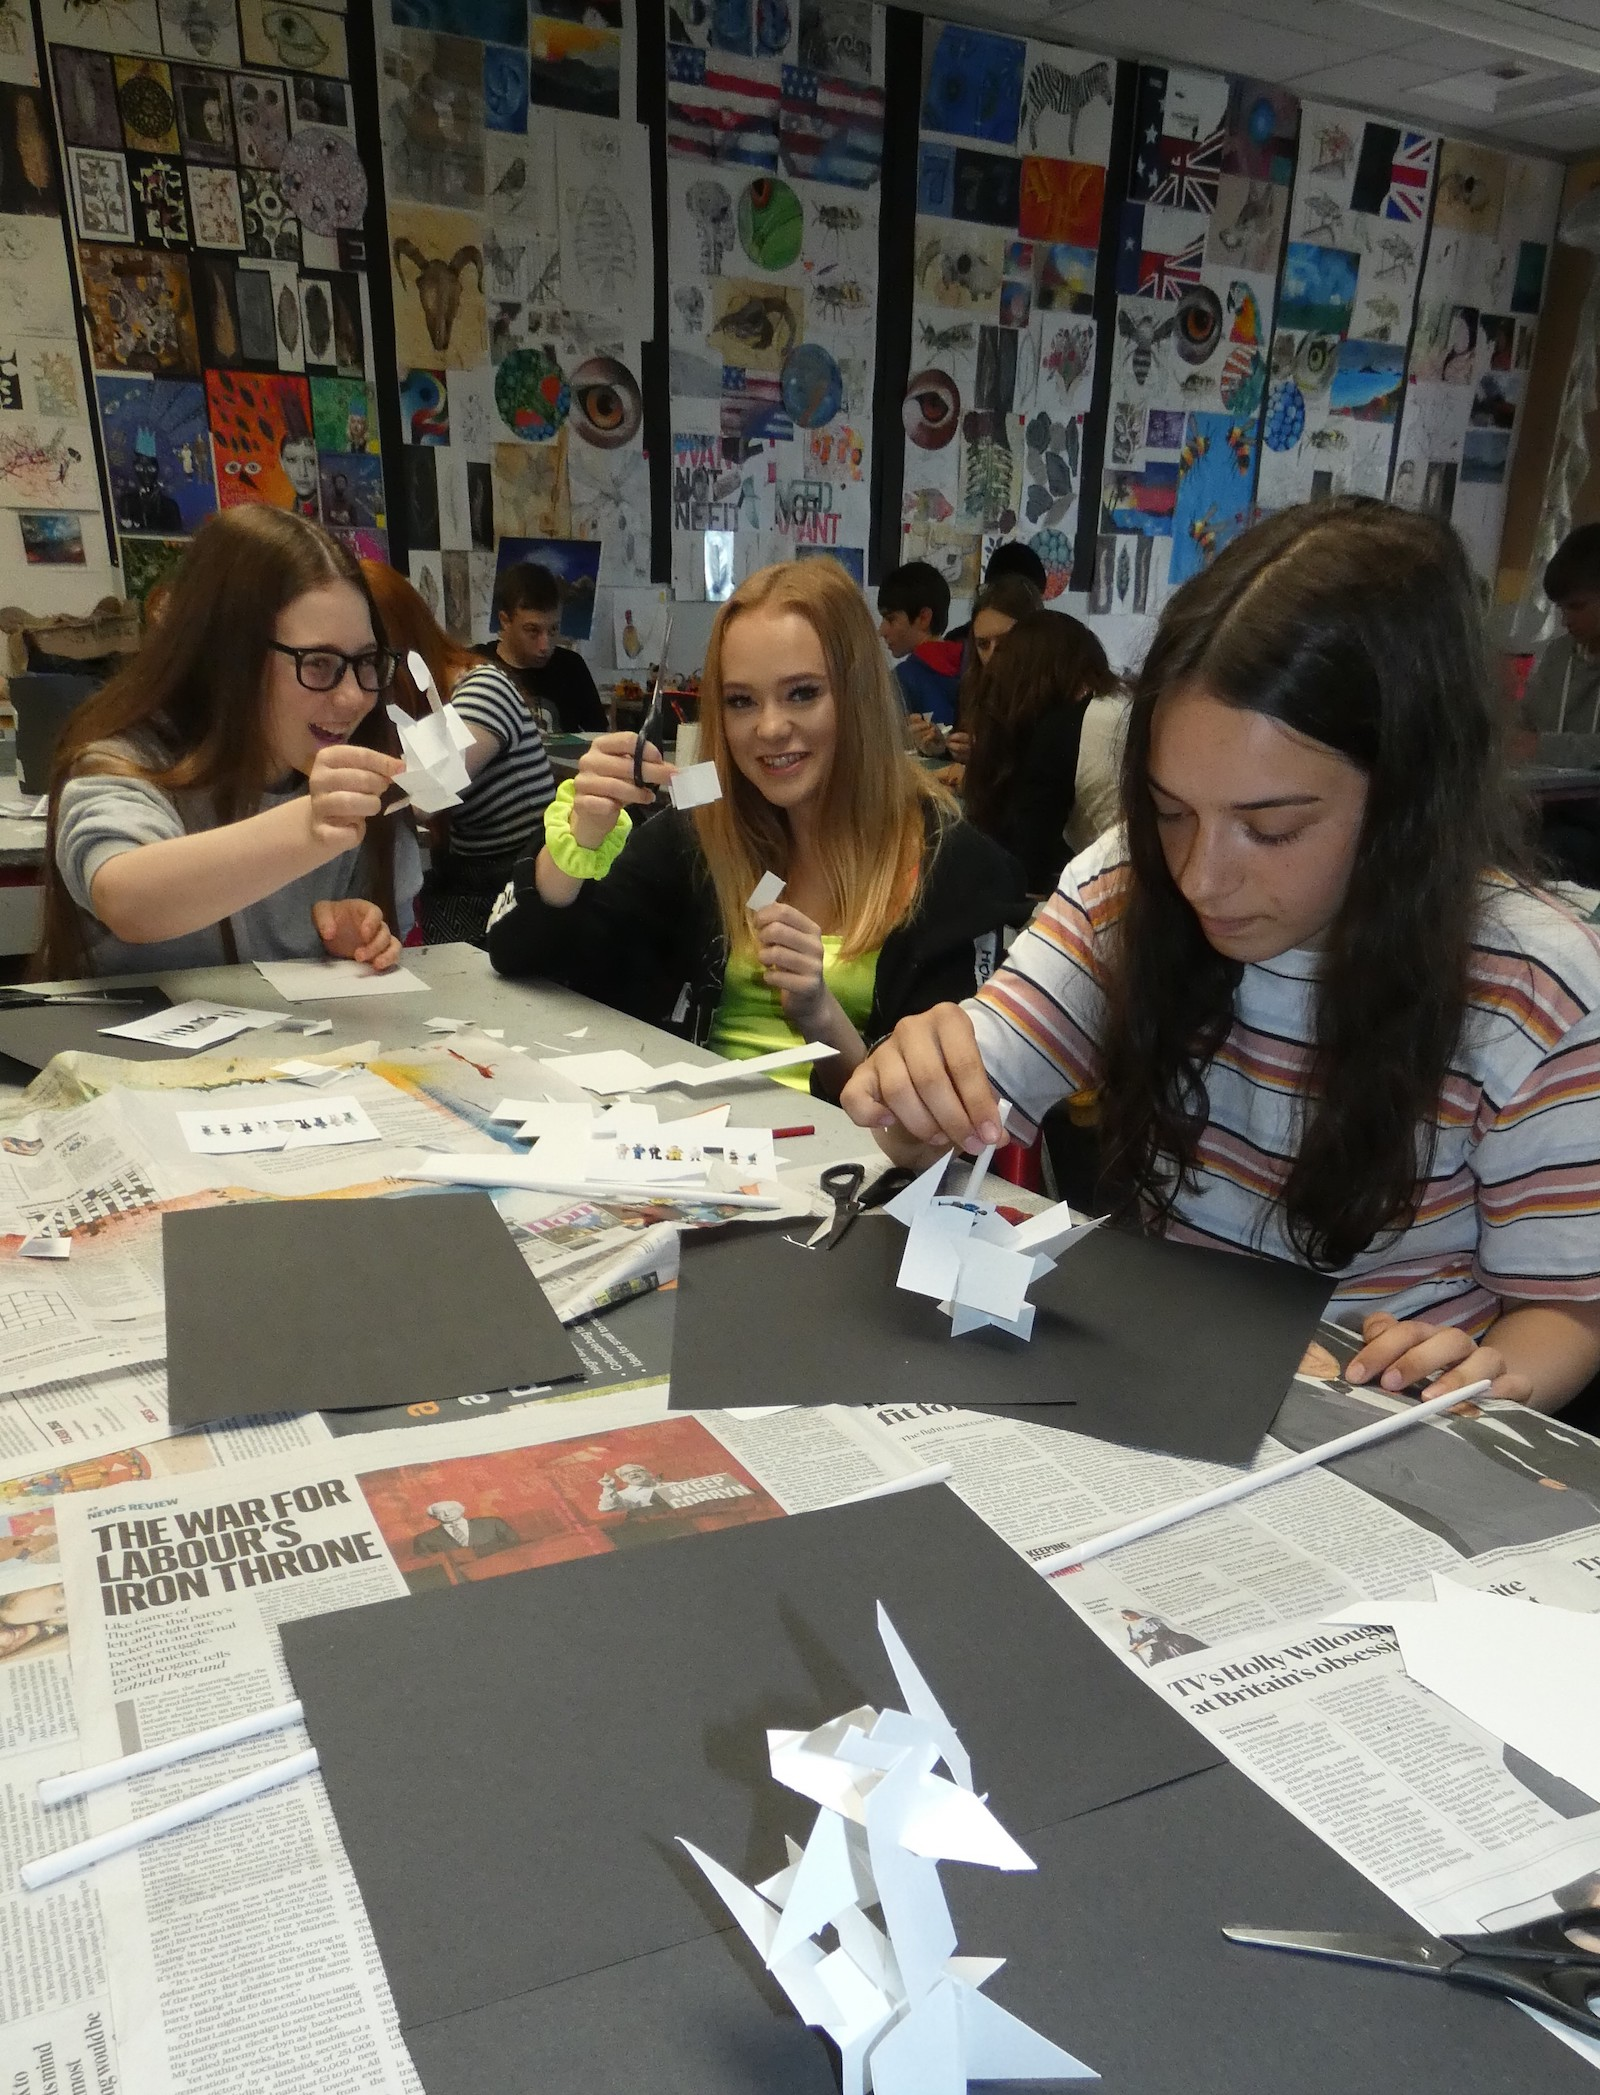 Marple Hall School Stockport - Creative Lesson